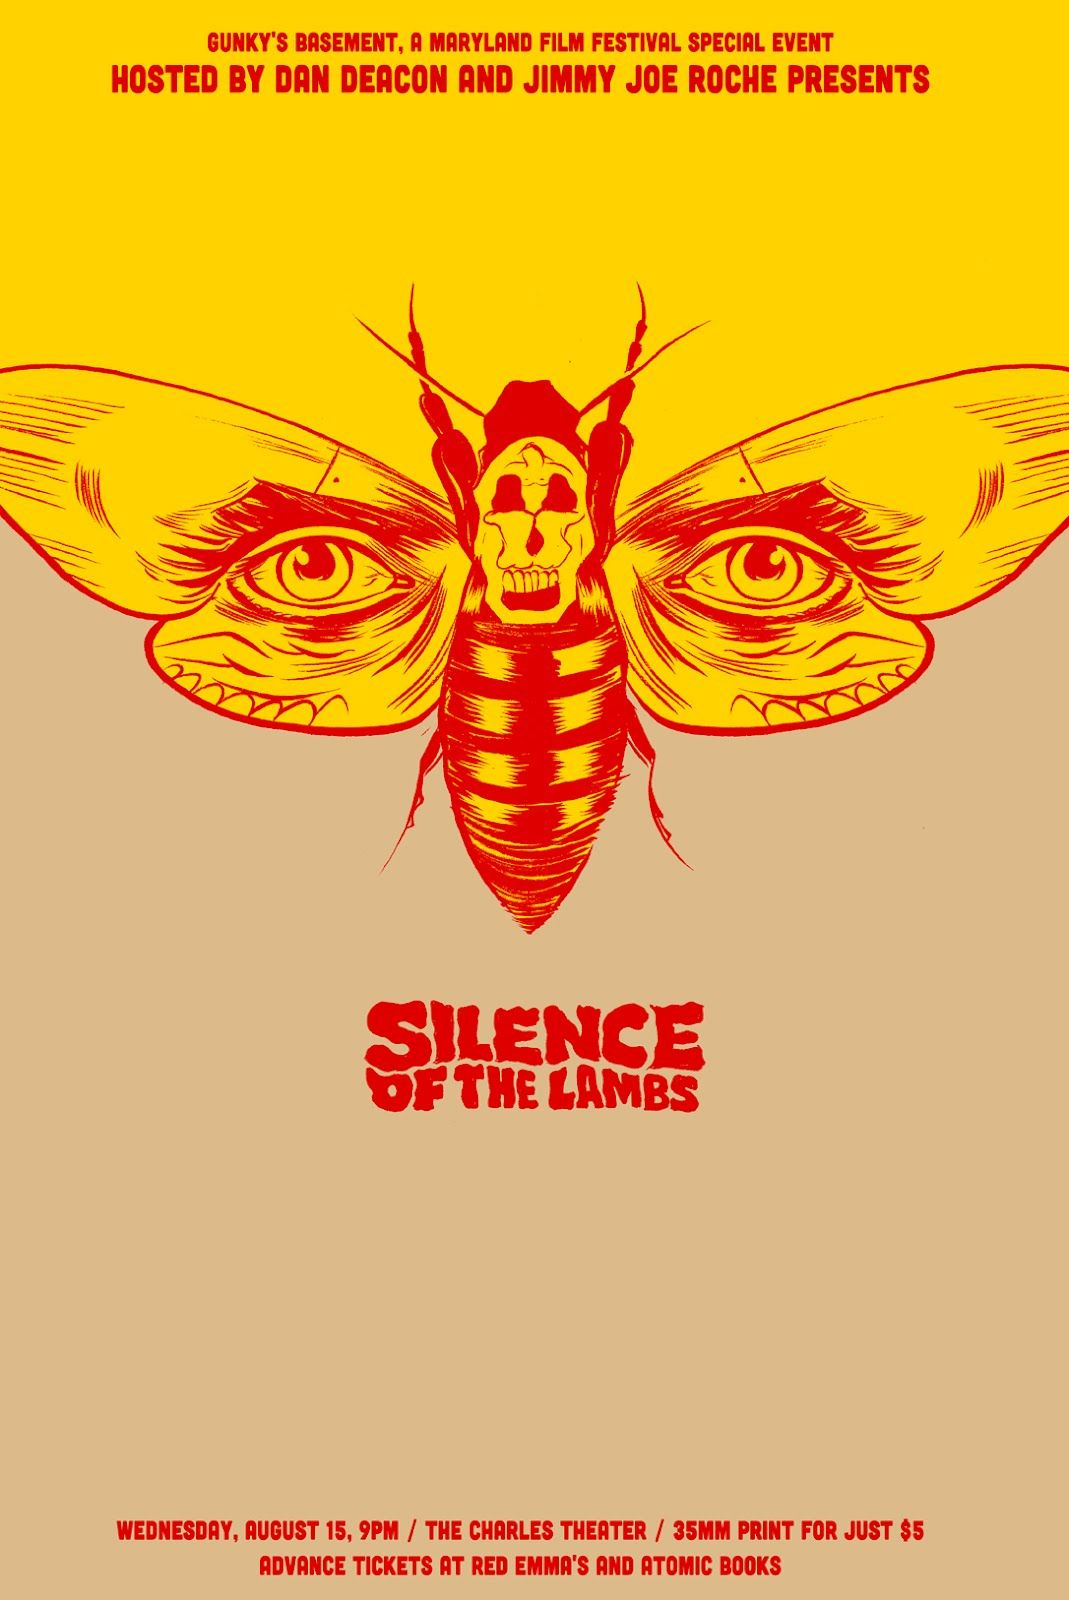 http://jmountswritteninblood.com/2015/03/24/alt-postr-spotlight-the-silence-of-the-lambs/